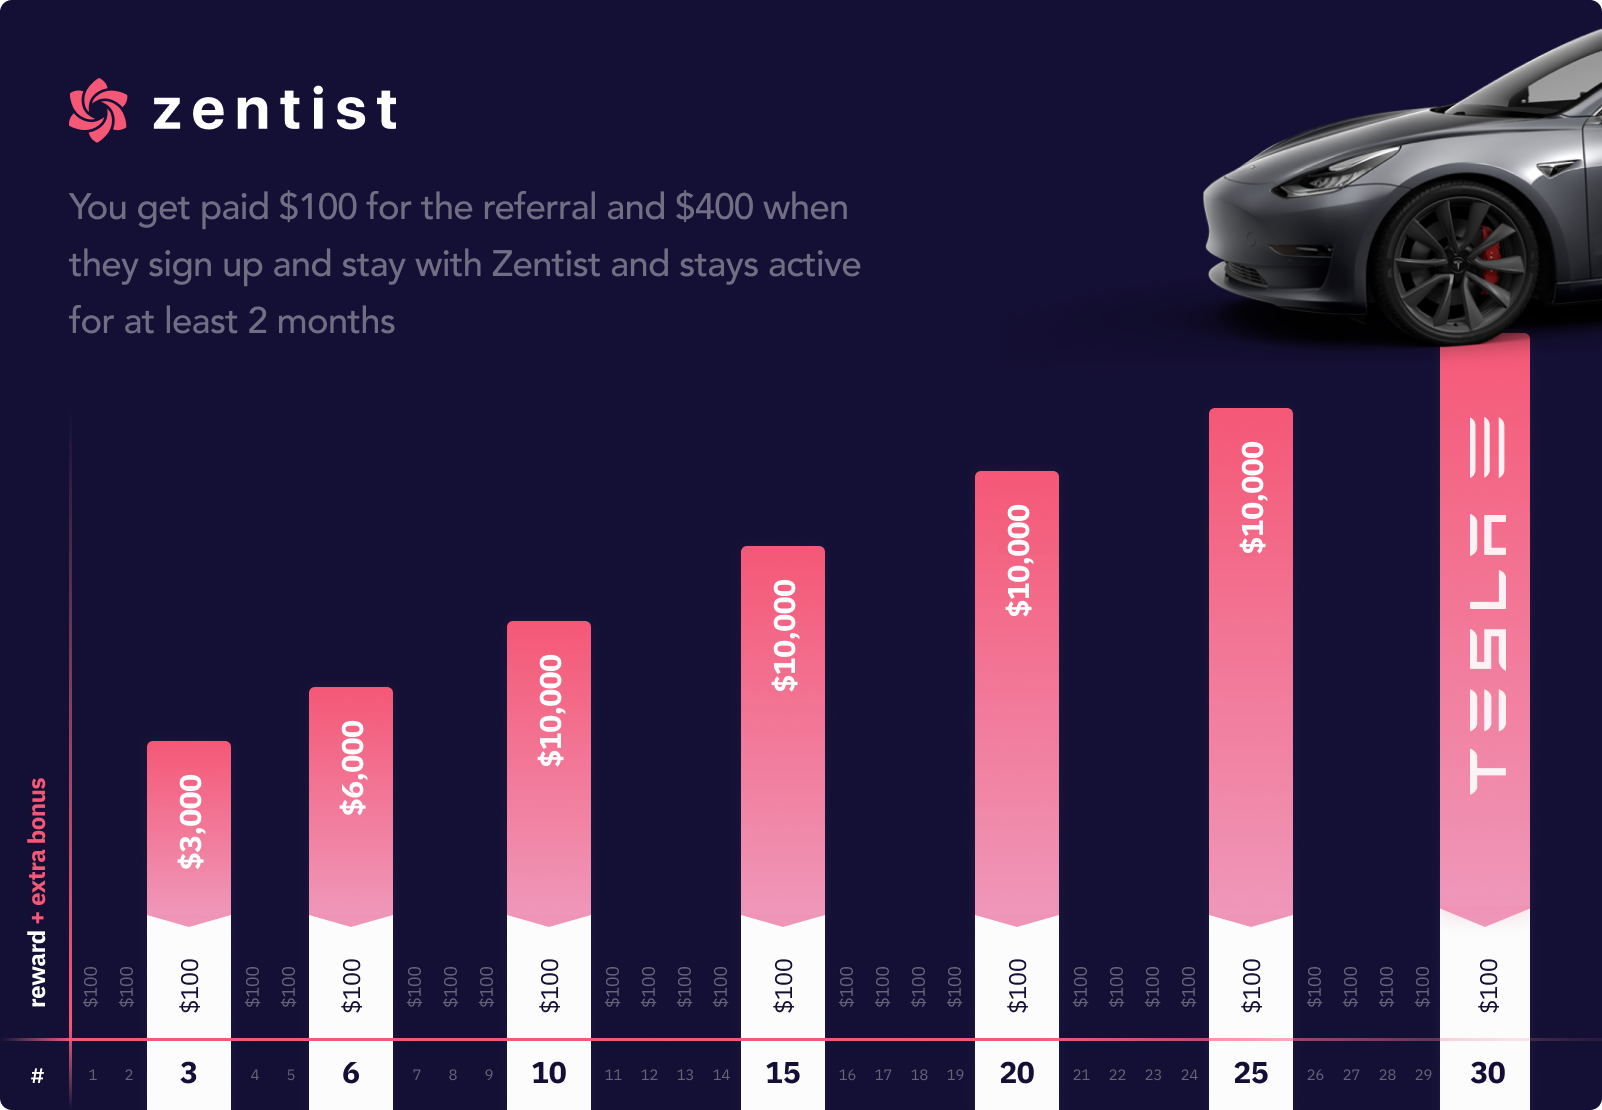 An infographic showing your rewards can grow. Upon 30 referral's it shows the Tesla you can own